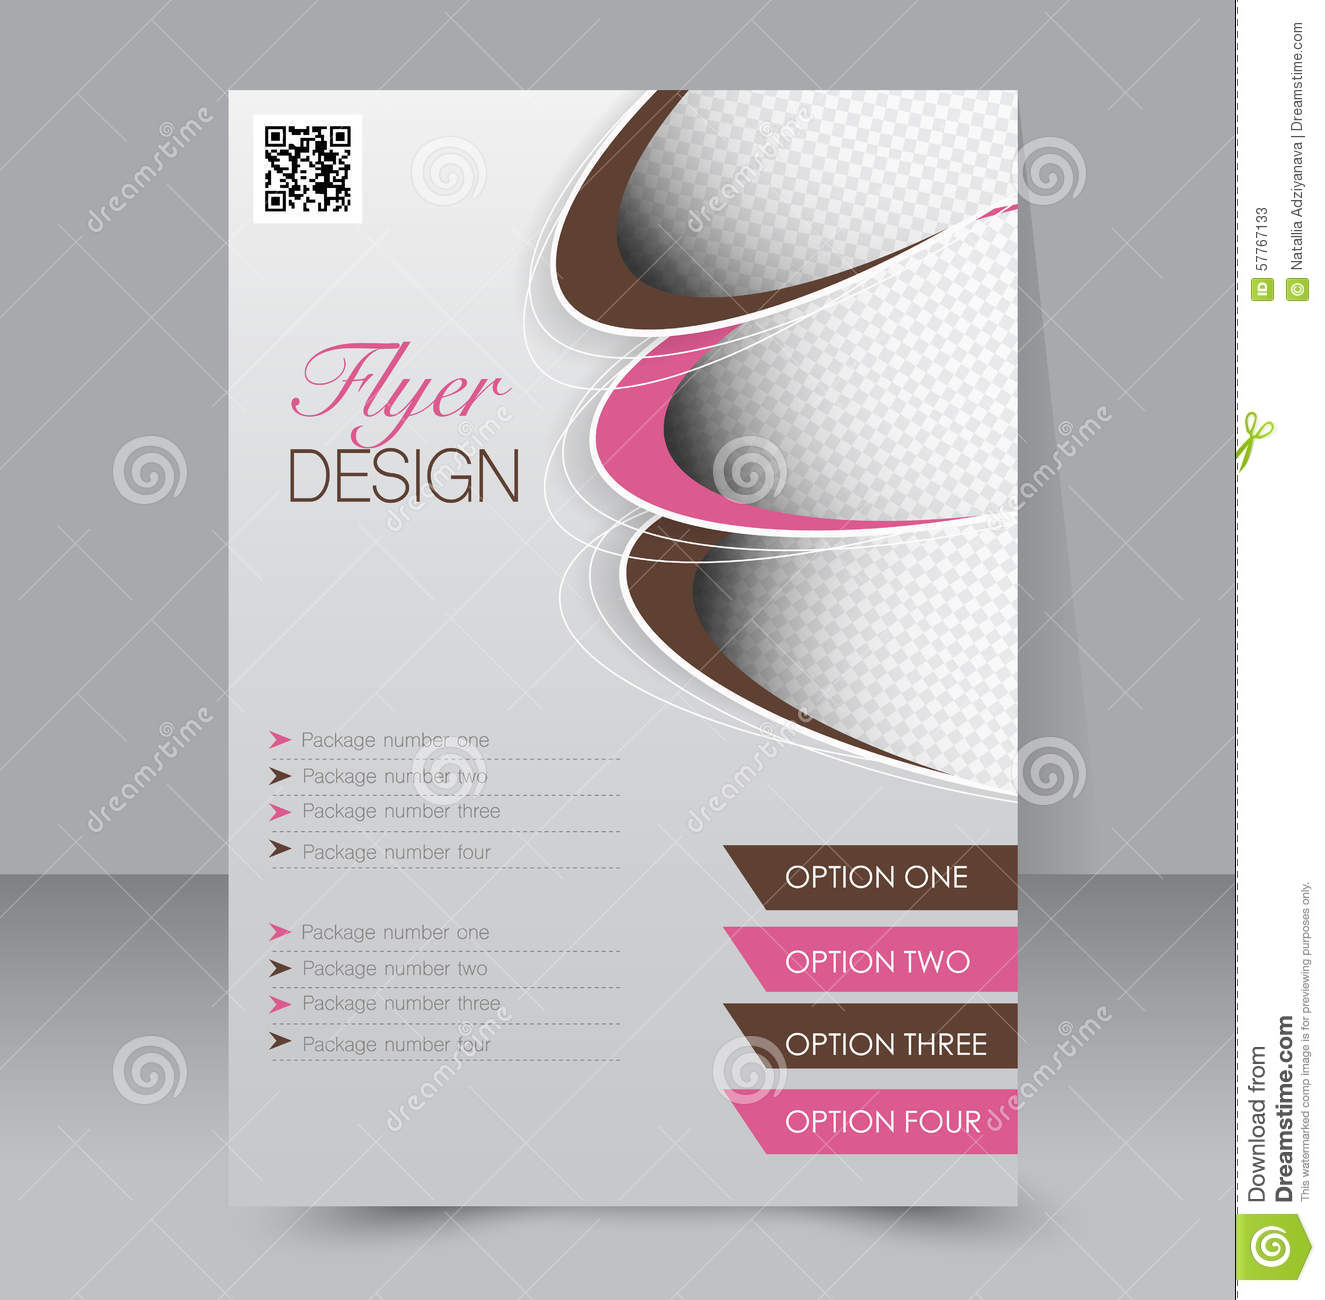 Poster design business - Download